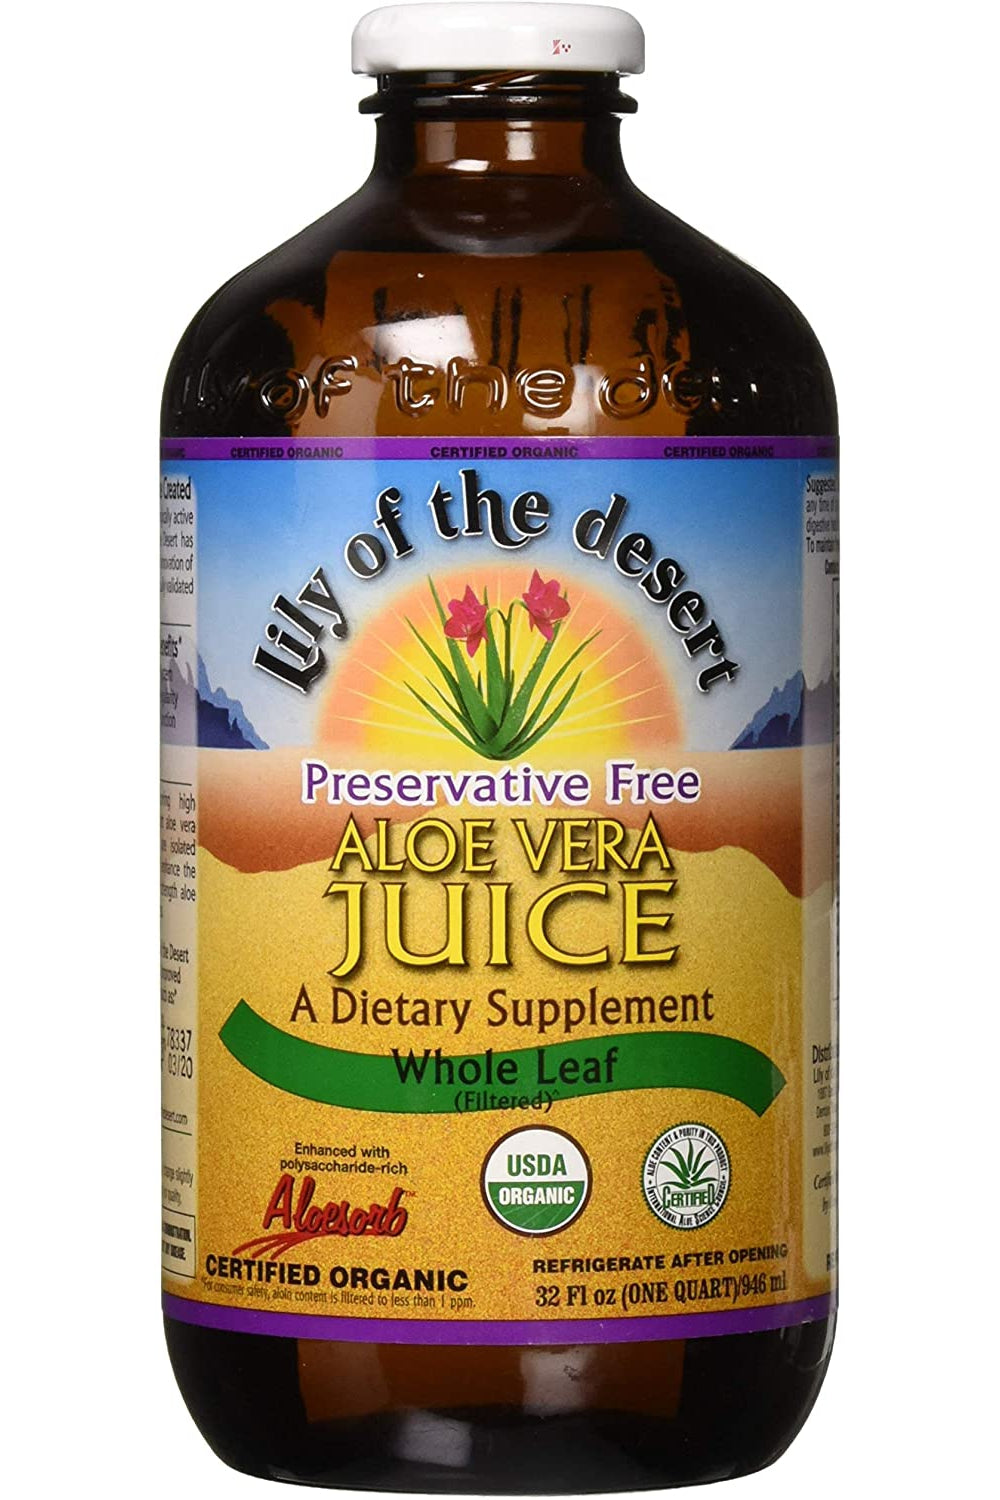 Lily of the Desert Aloe Vera Juice - Whole Leaf 946ml